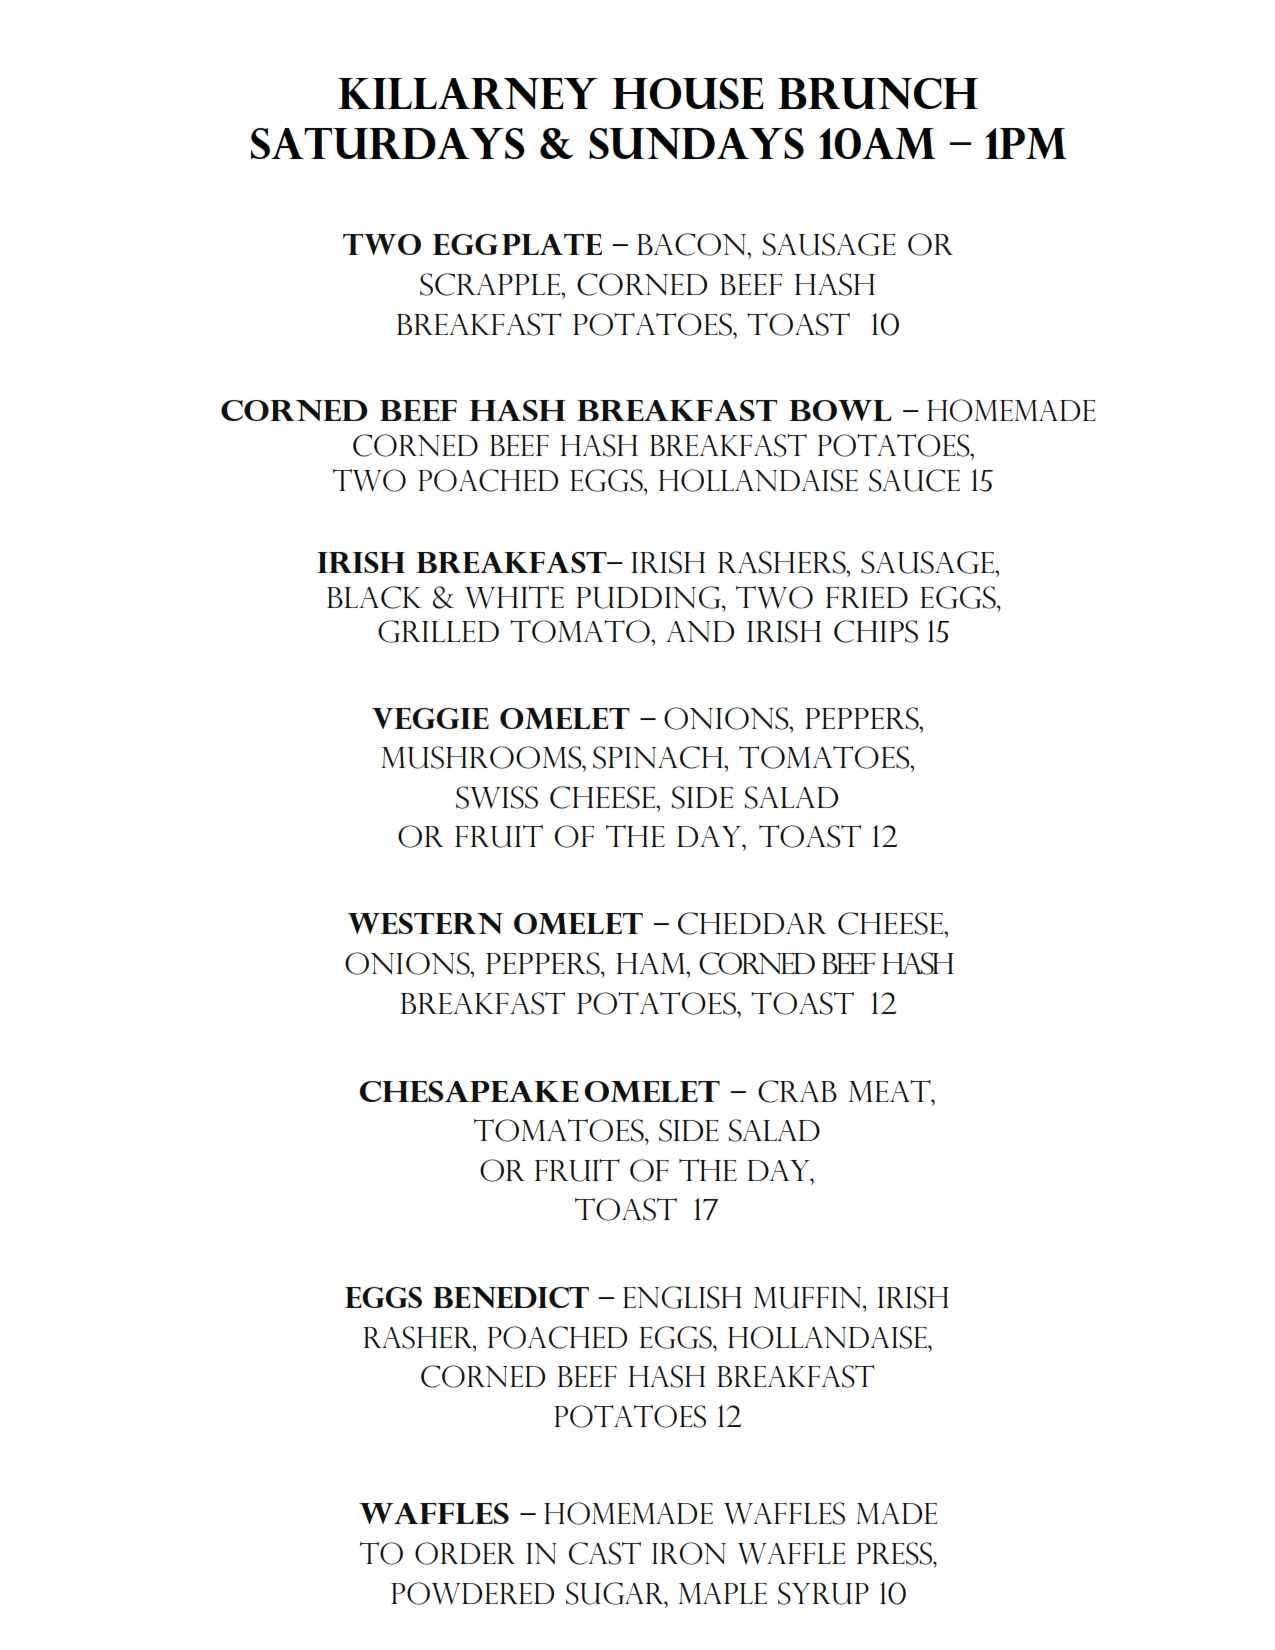 KH BRUNCH MENU 080520 WEB